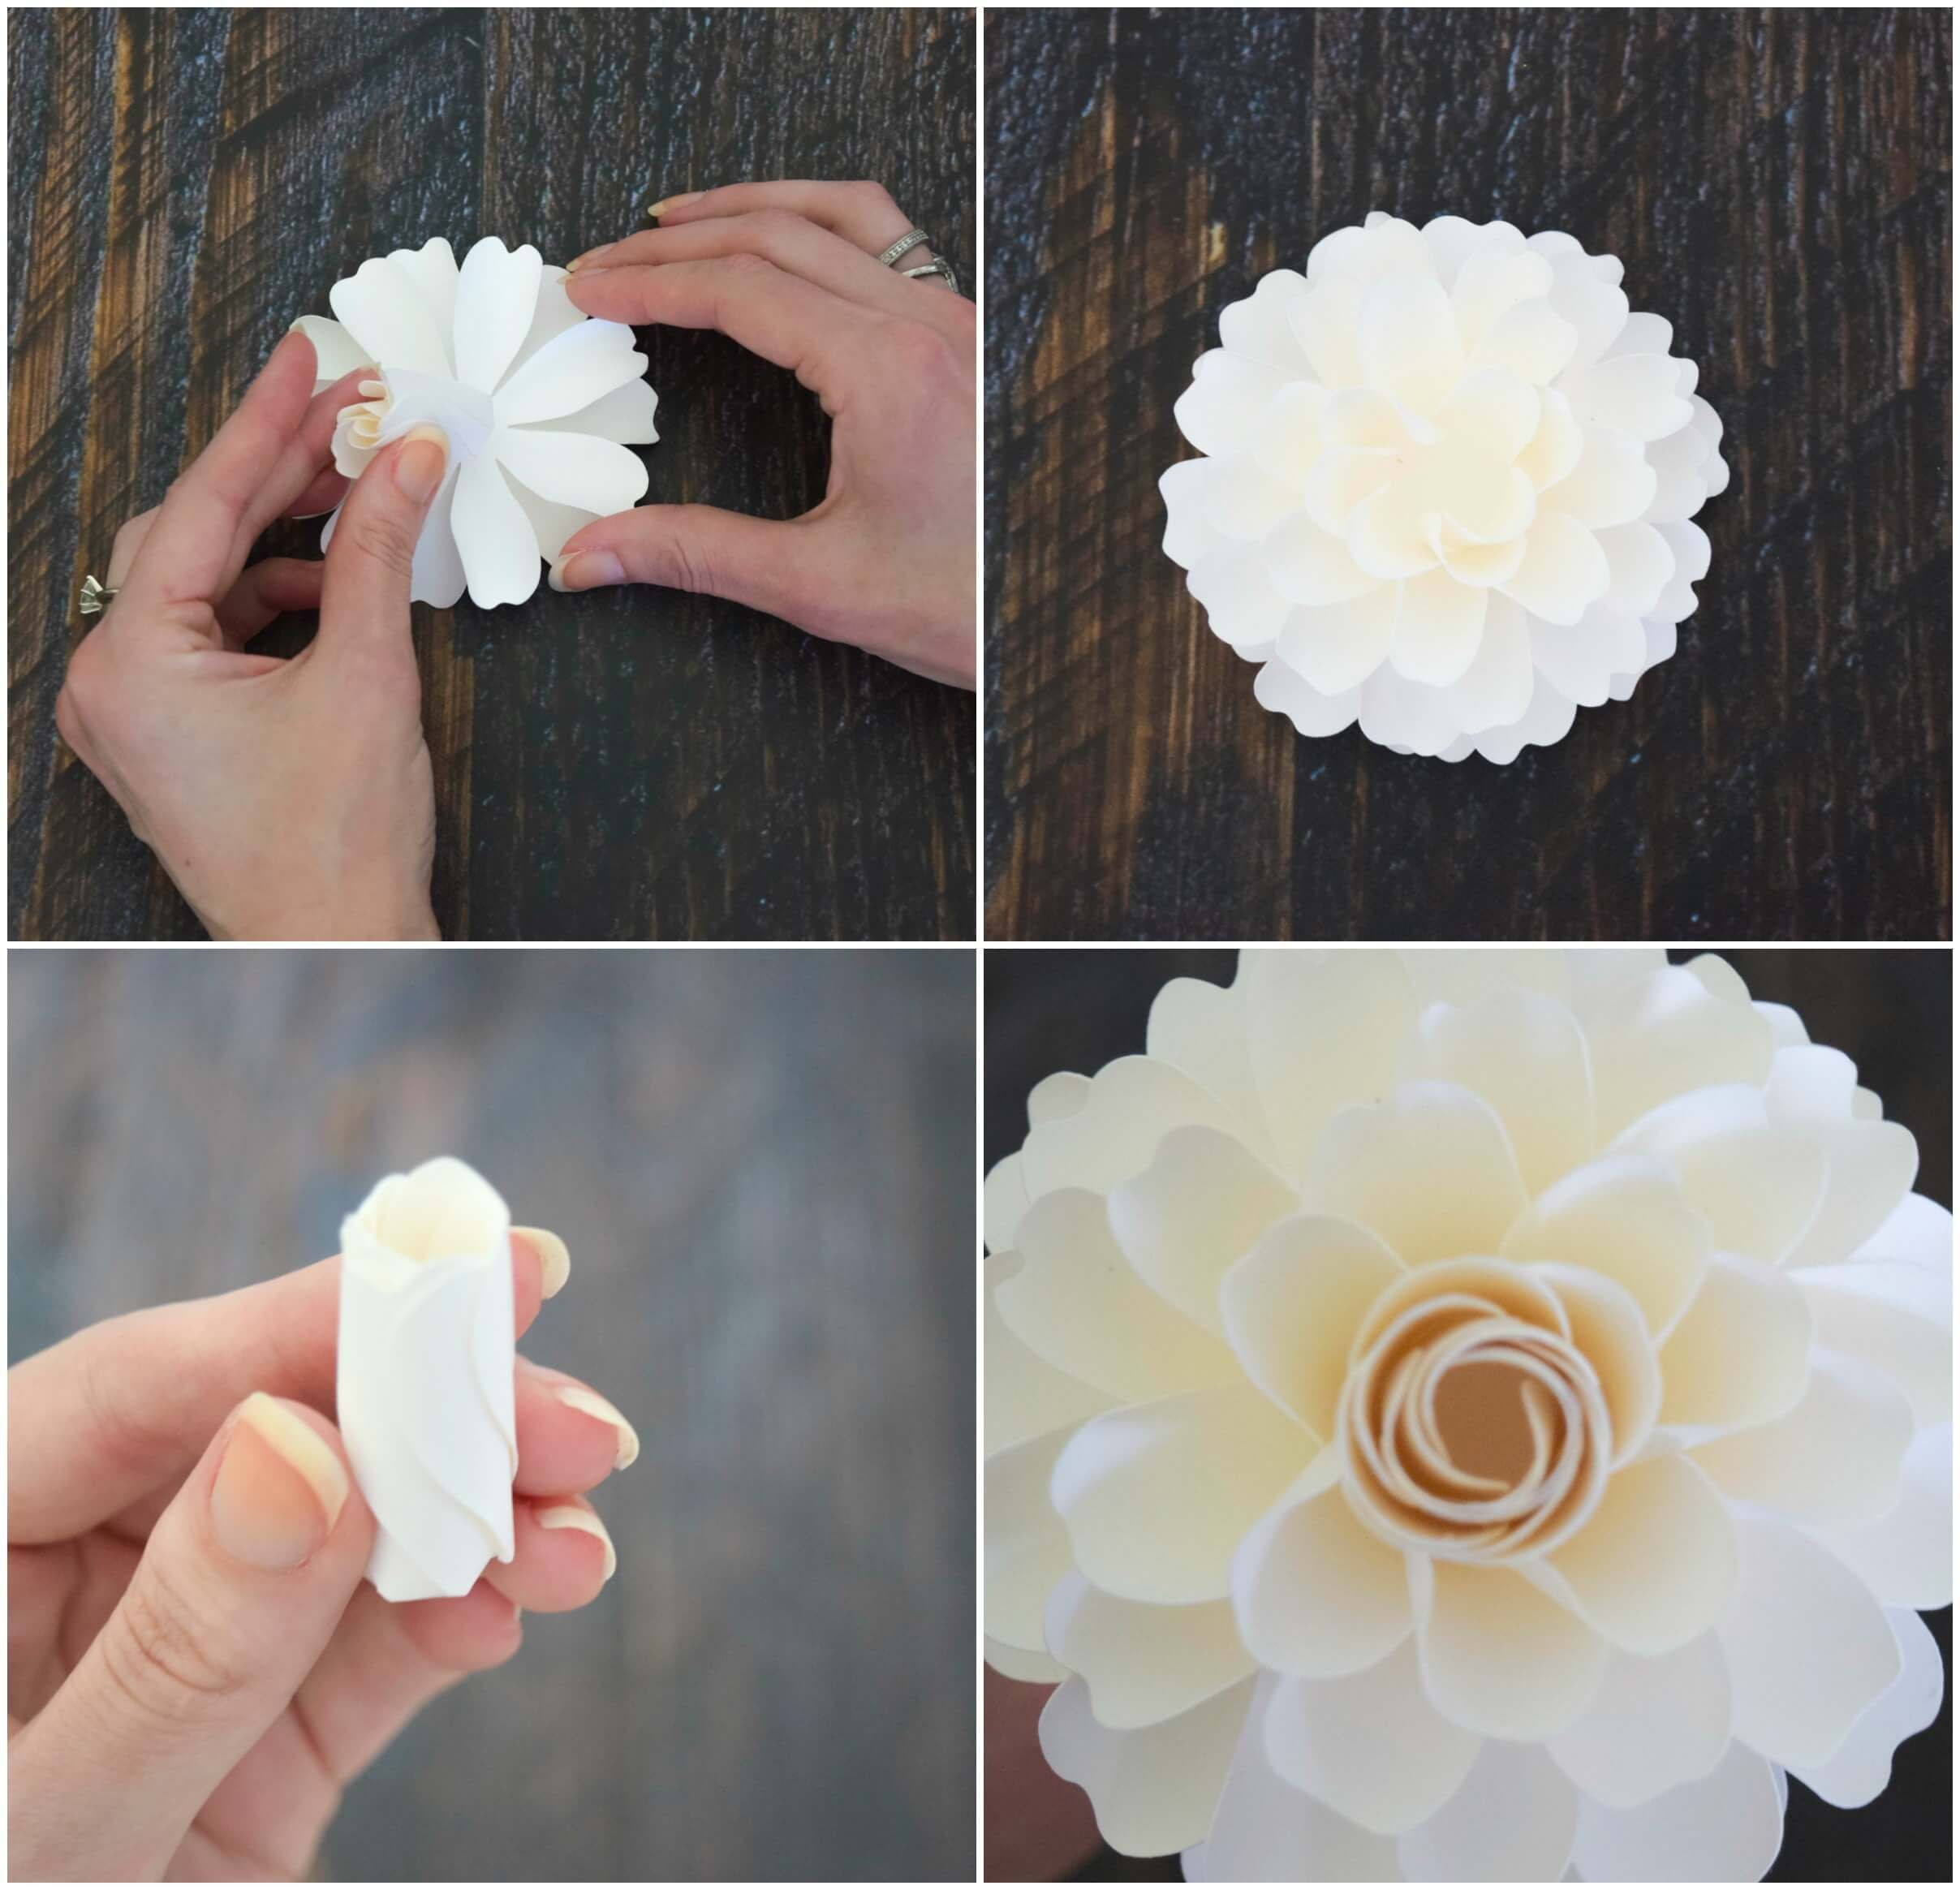 How To Make Paper Dahlia Flowers Small Paper Flower Tutorial Paper Dahlia Paper Flowers Paper Flower Tutorial